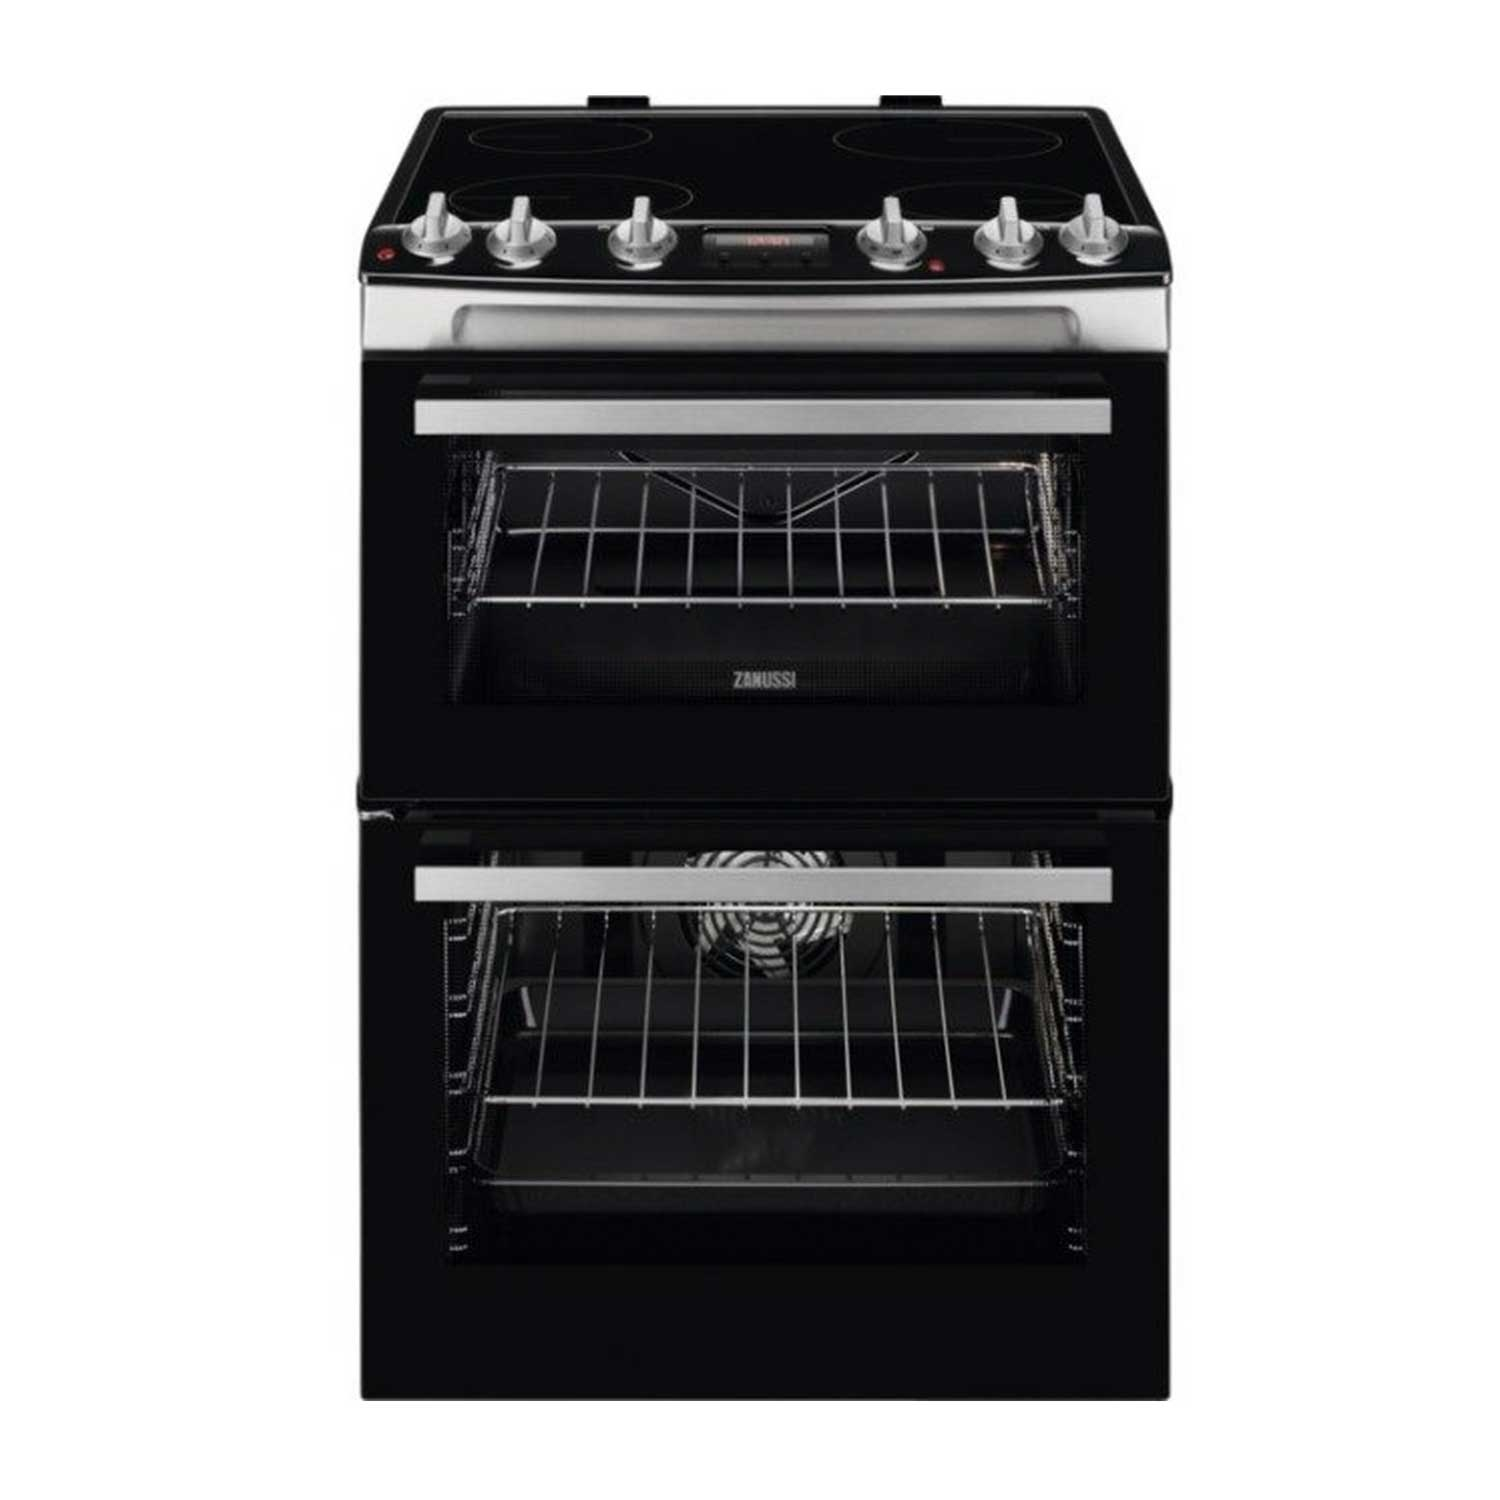 Zanussi 60cm Electric Double Oven with Ceramic Hob - Stainless Steel - 0